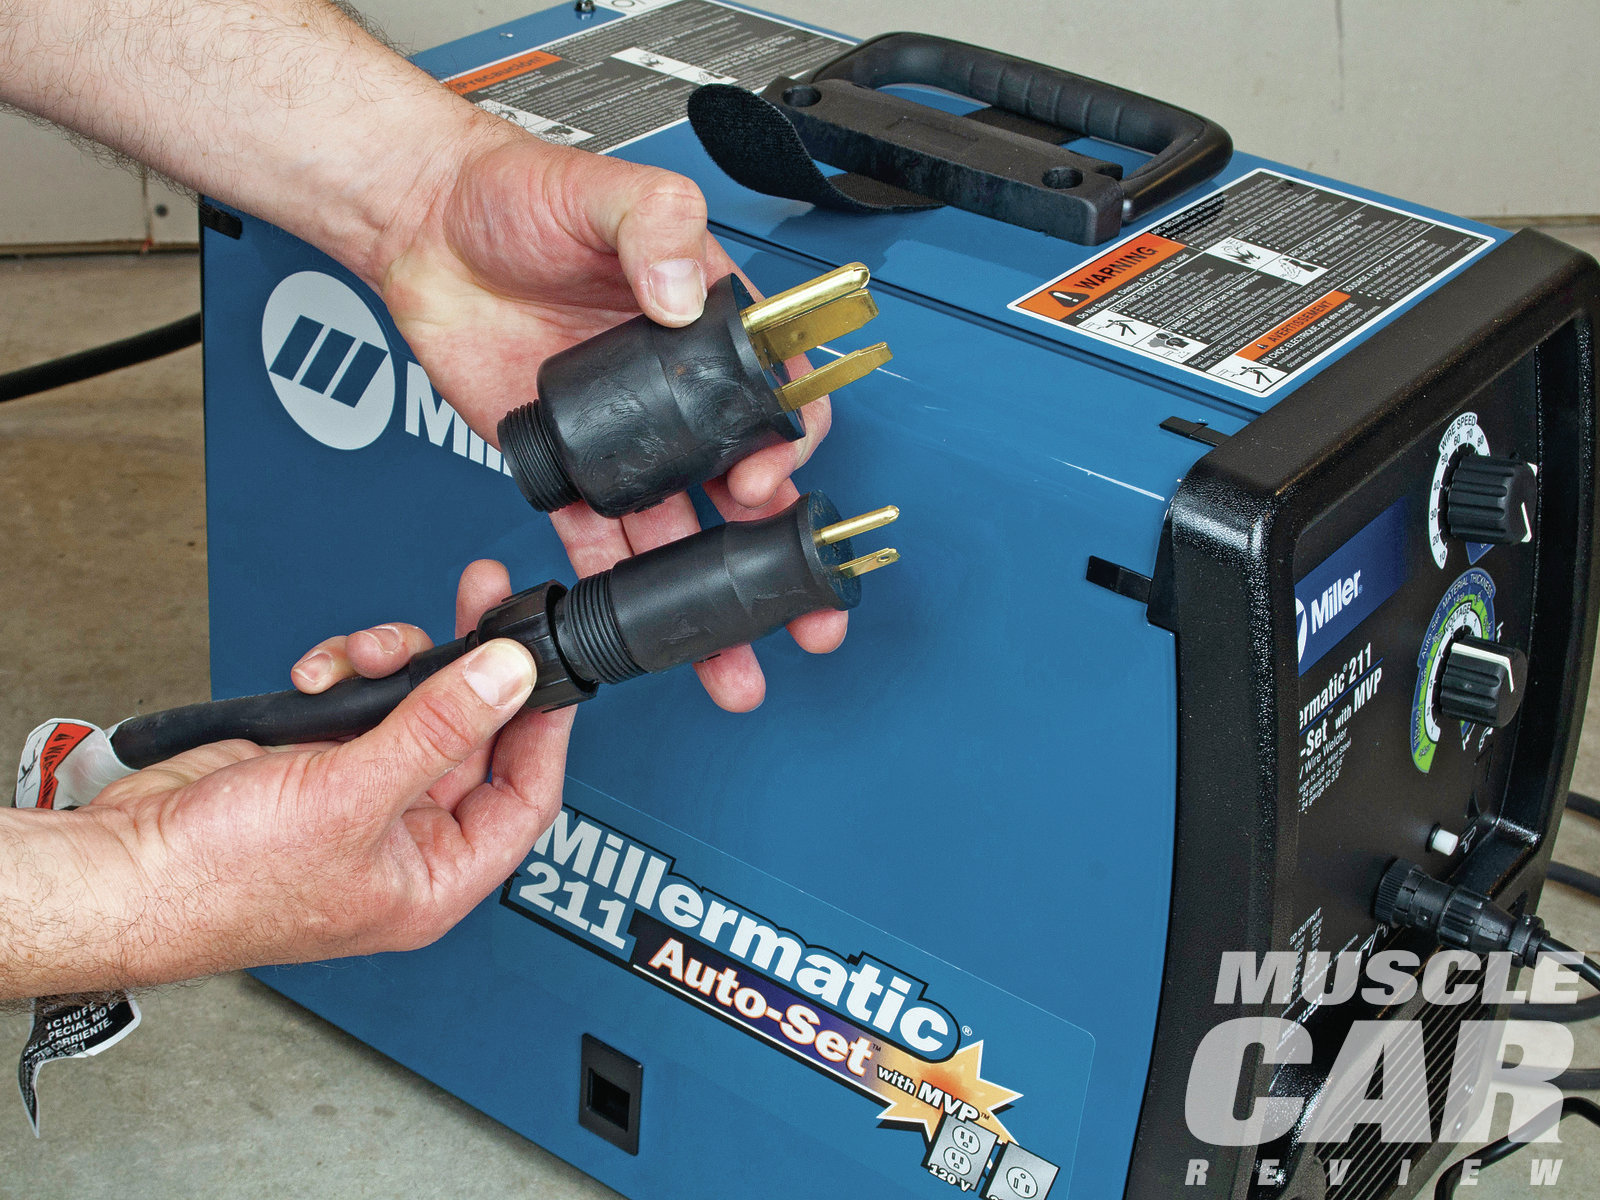 The Millermatic 211 Auto-Set can run on either voltage by simply changing the plug on the end of the power cord. This is handy if you will be operating the welder in a variety of locations and won't always have access to 220V power, or if you only have 120V service now and want to upgrade after buying a MIG welder. Naturally, when it is connected to a 120V source the Millermatic is limited in its power output just like any other 120V machine.